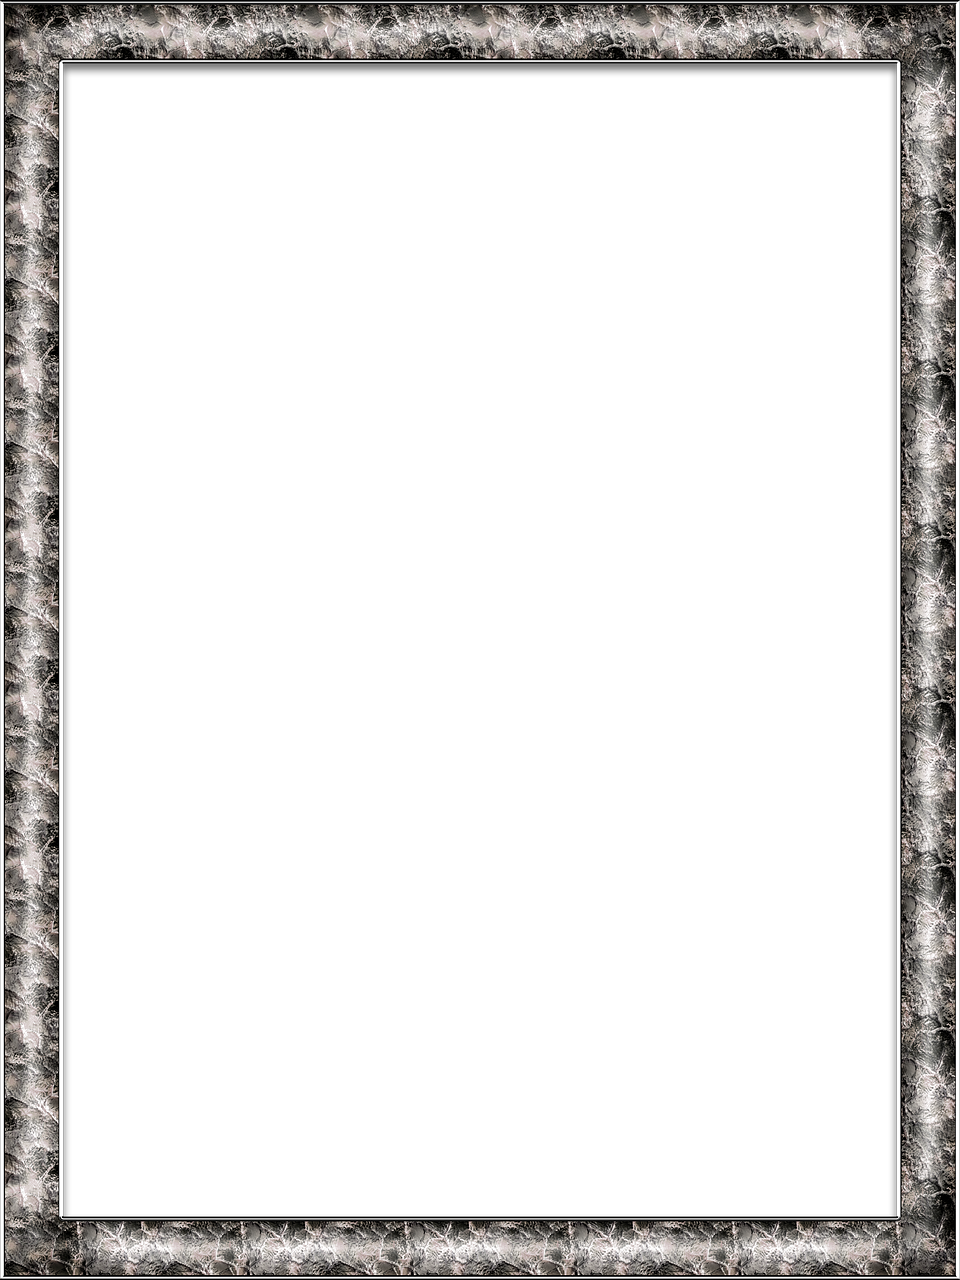 frame photo frame transparent background free photo